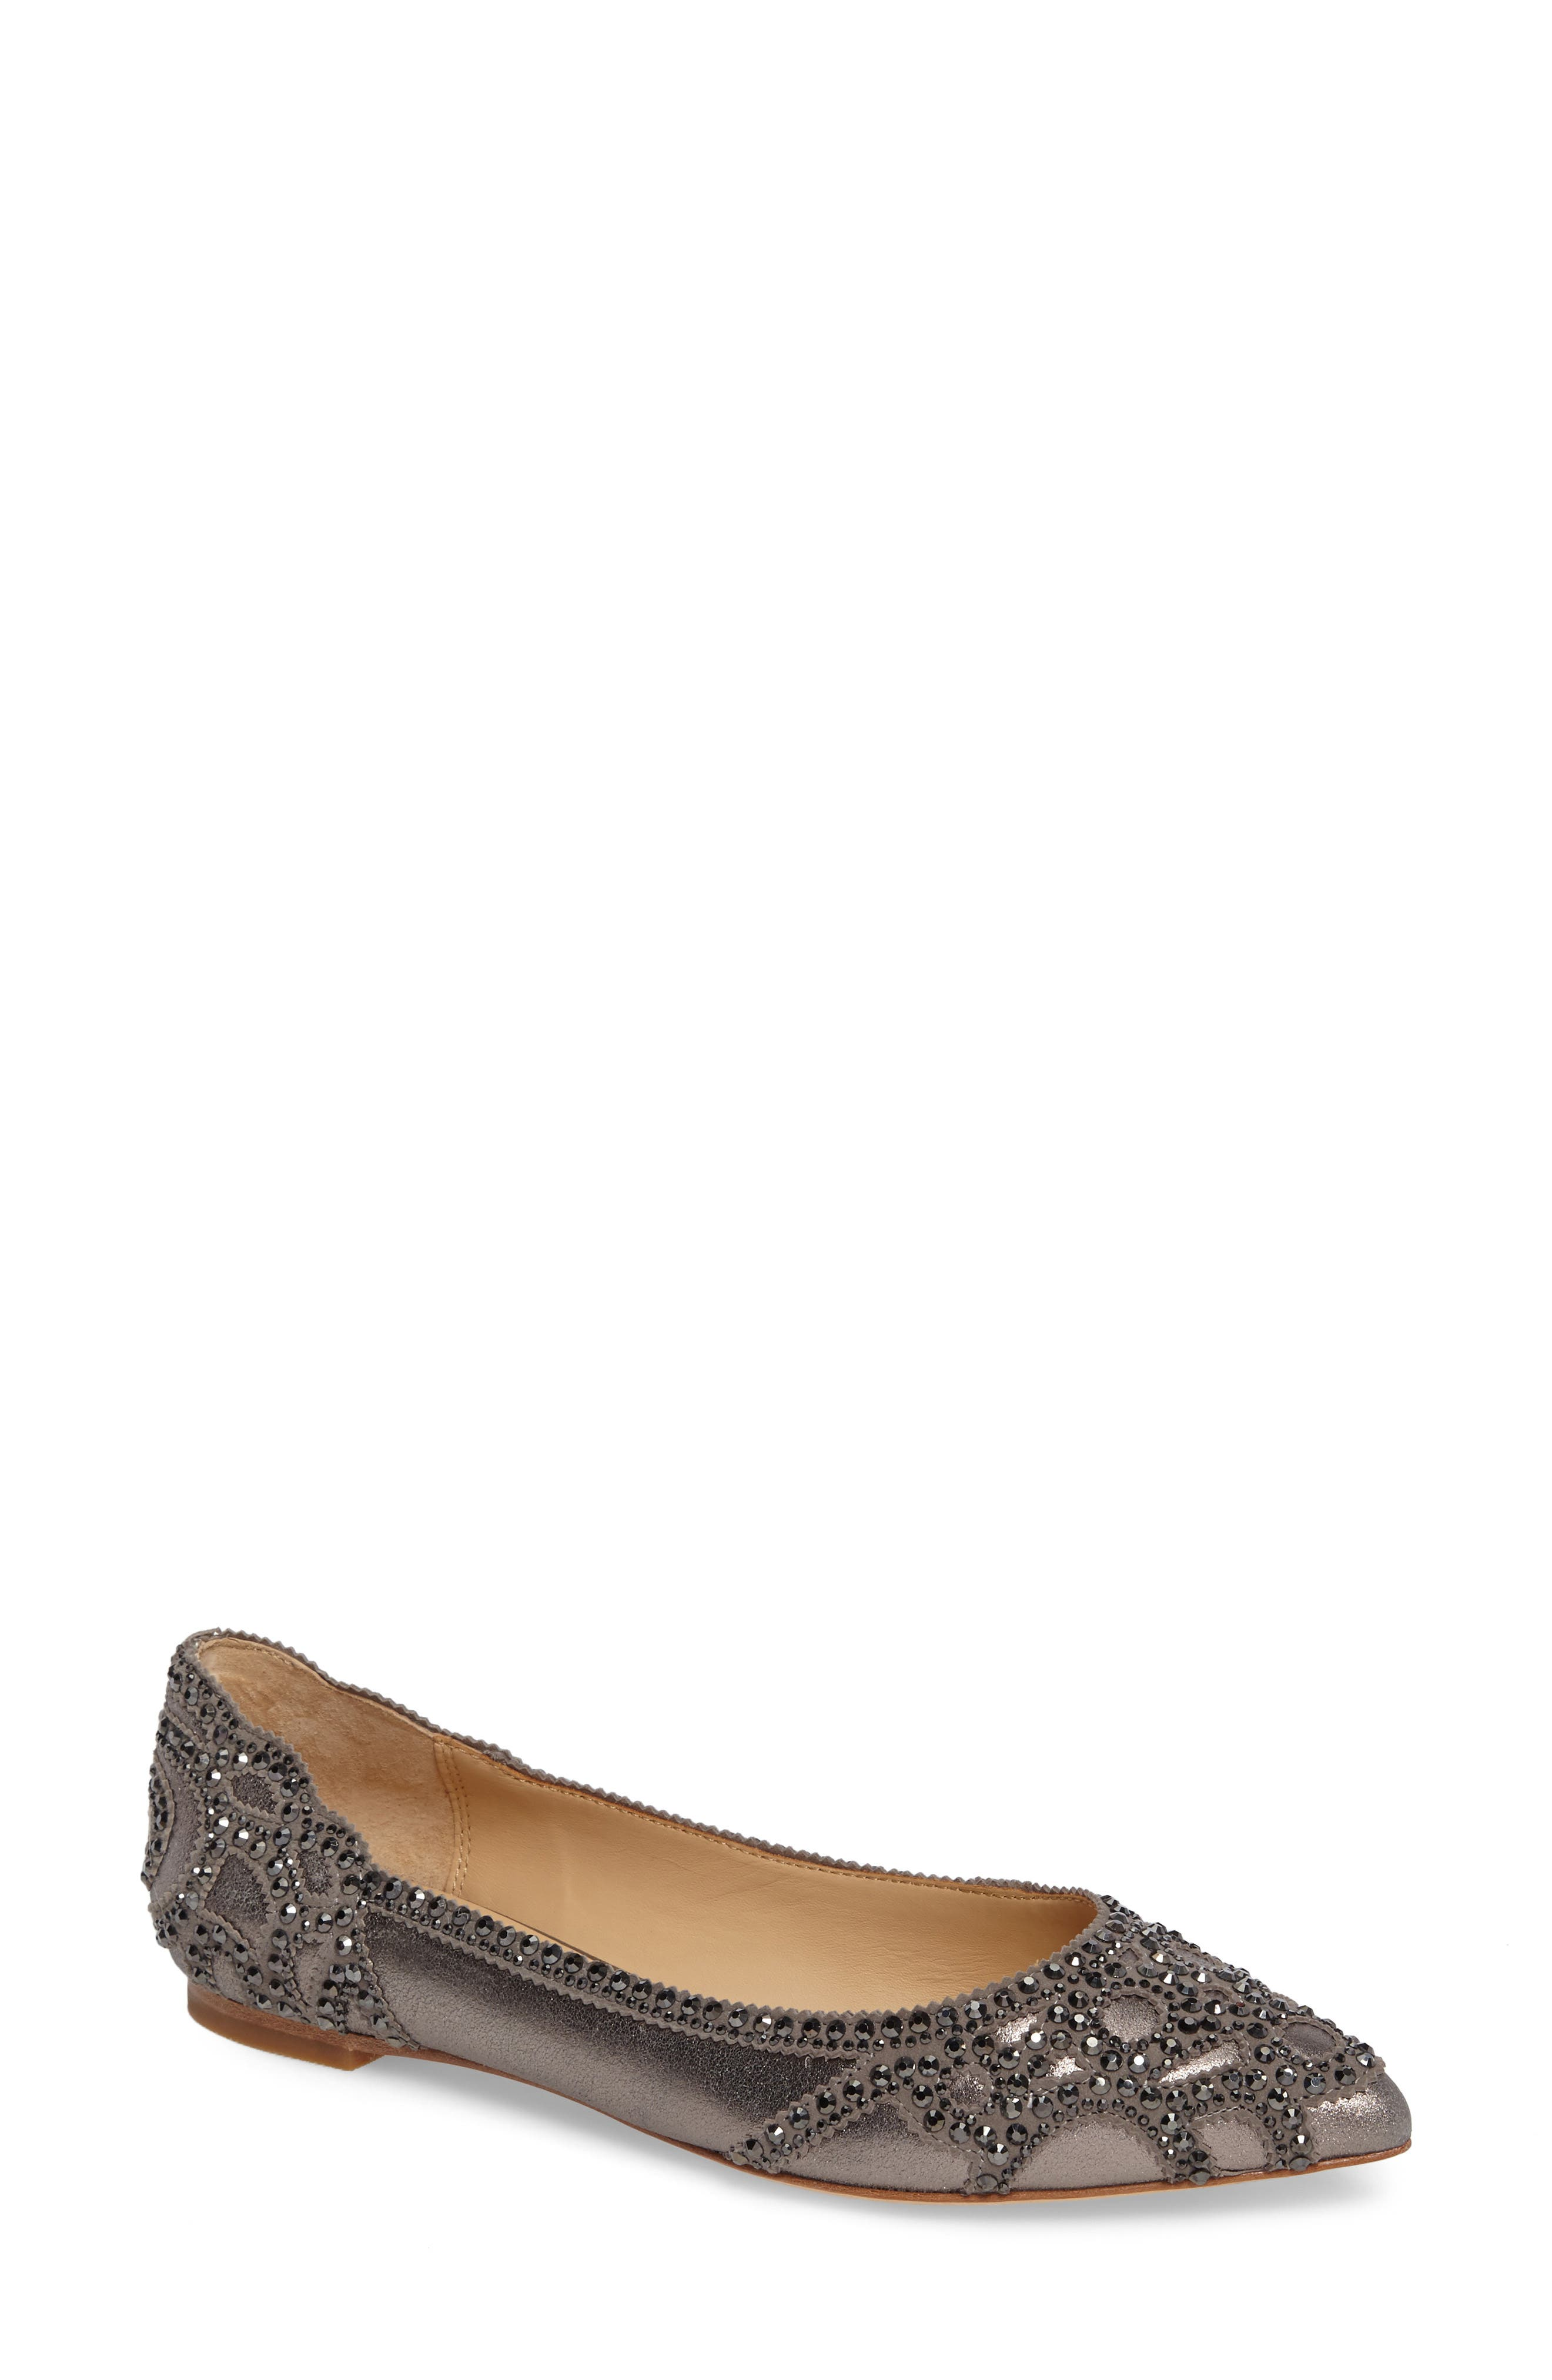 Gigi Crystal Pointy Toe Flat,                             Main thumbnail 1, color,